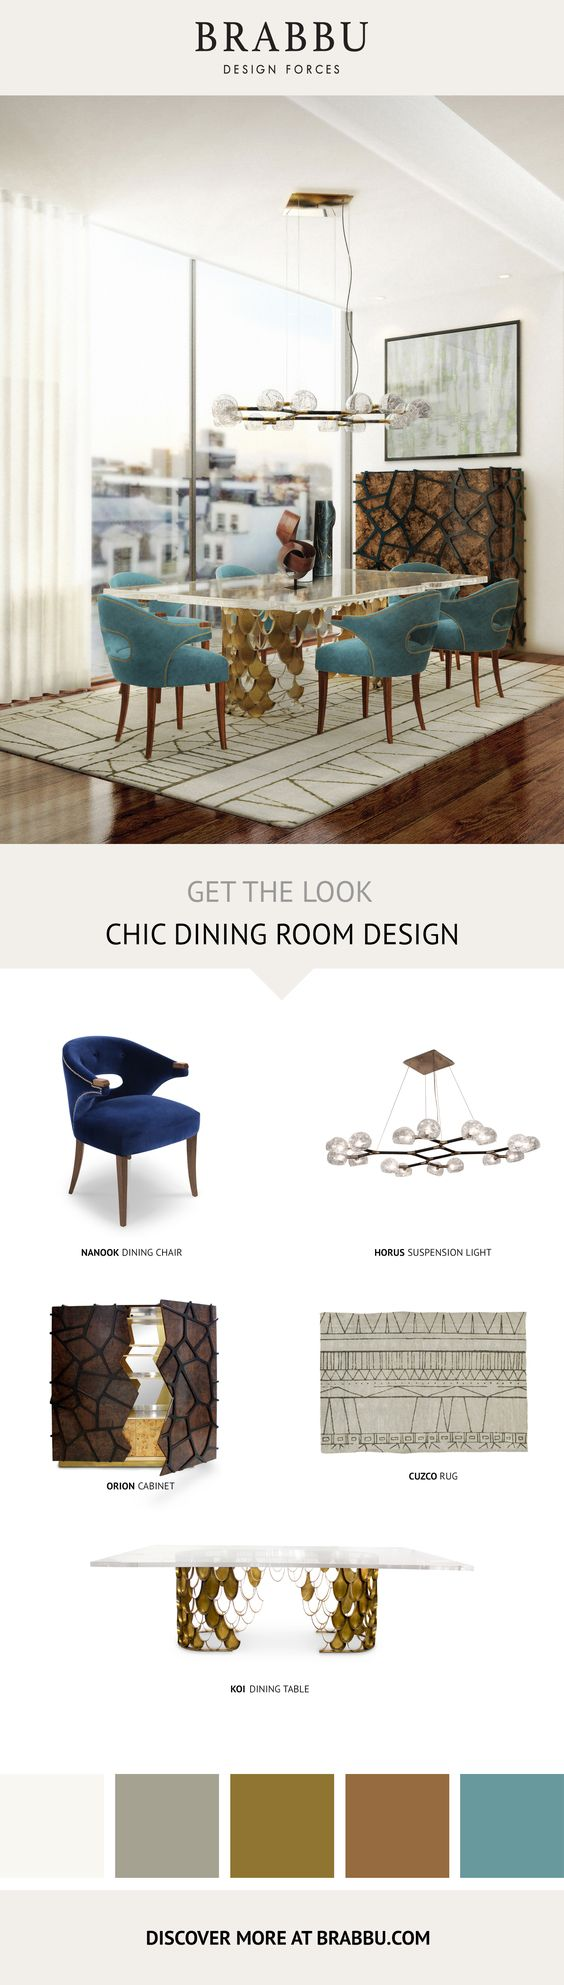 5 Outstanding Interior Design Tips To Always Have in Mind  5 Outstanding Interior Design Tips To Always Have in Mind! 5 Outstanding Interior Design Tips To Always Have in Mind! chic dining room design